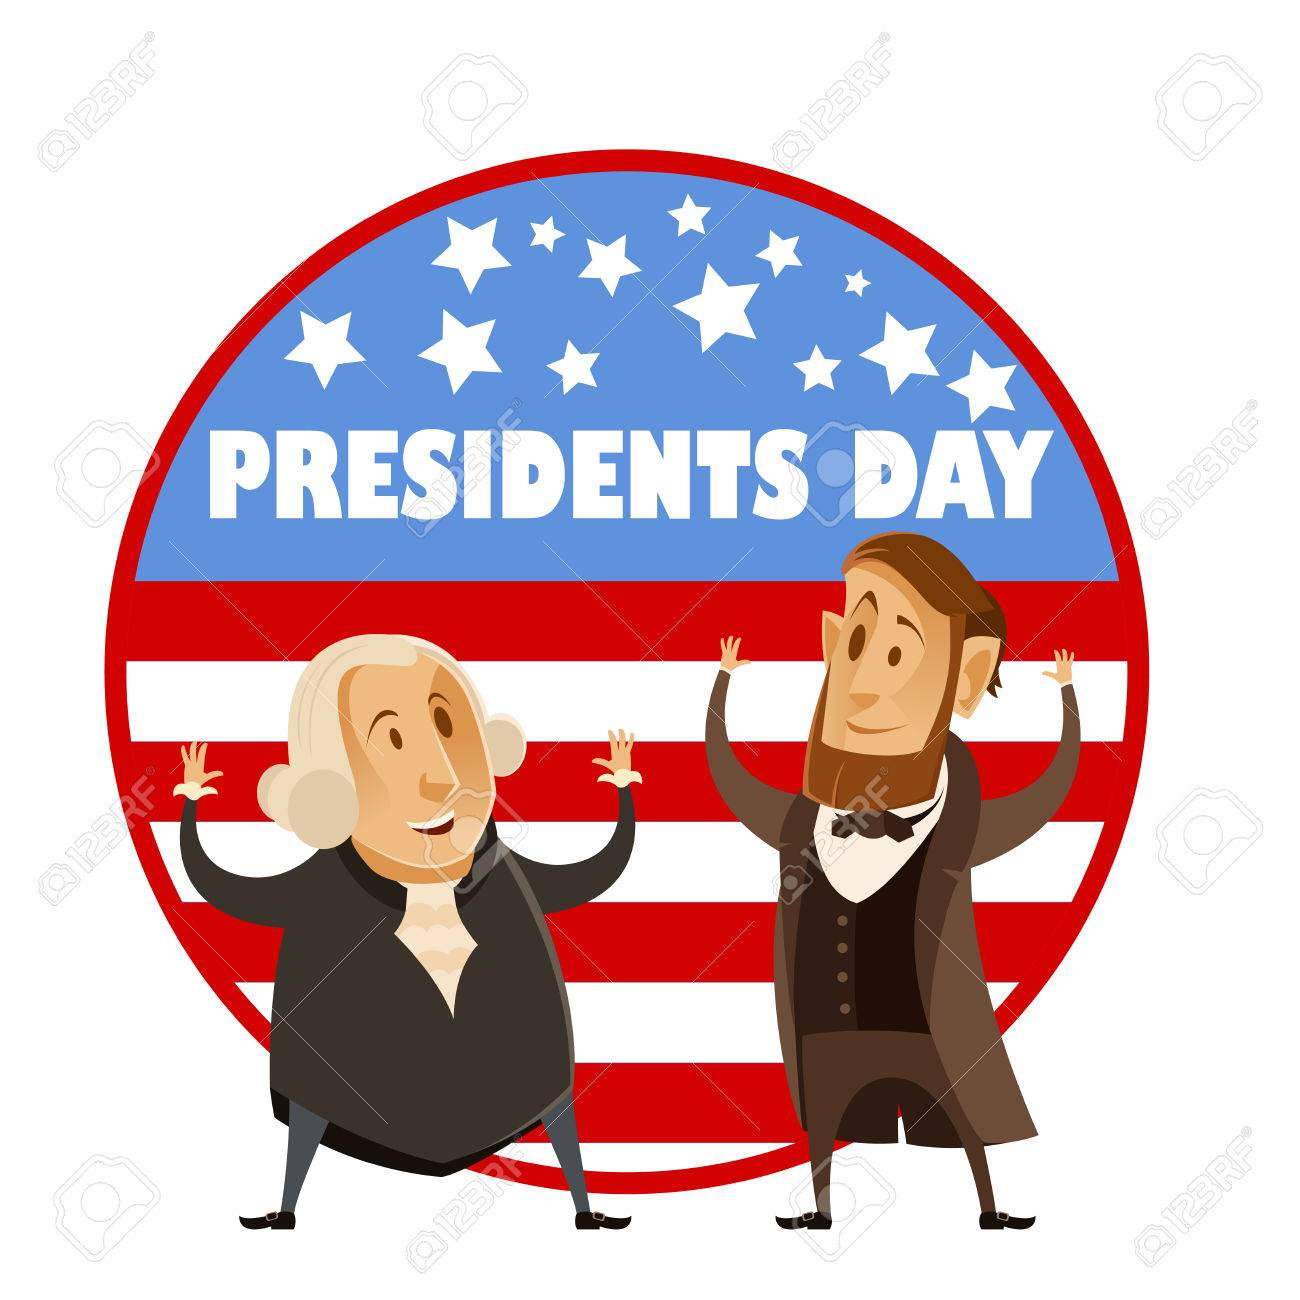 Vector image of the Presidents day banner.